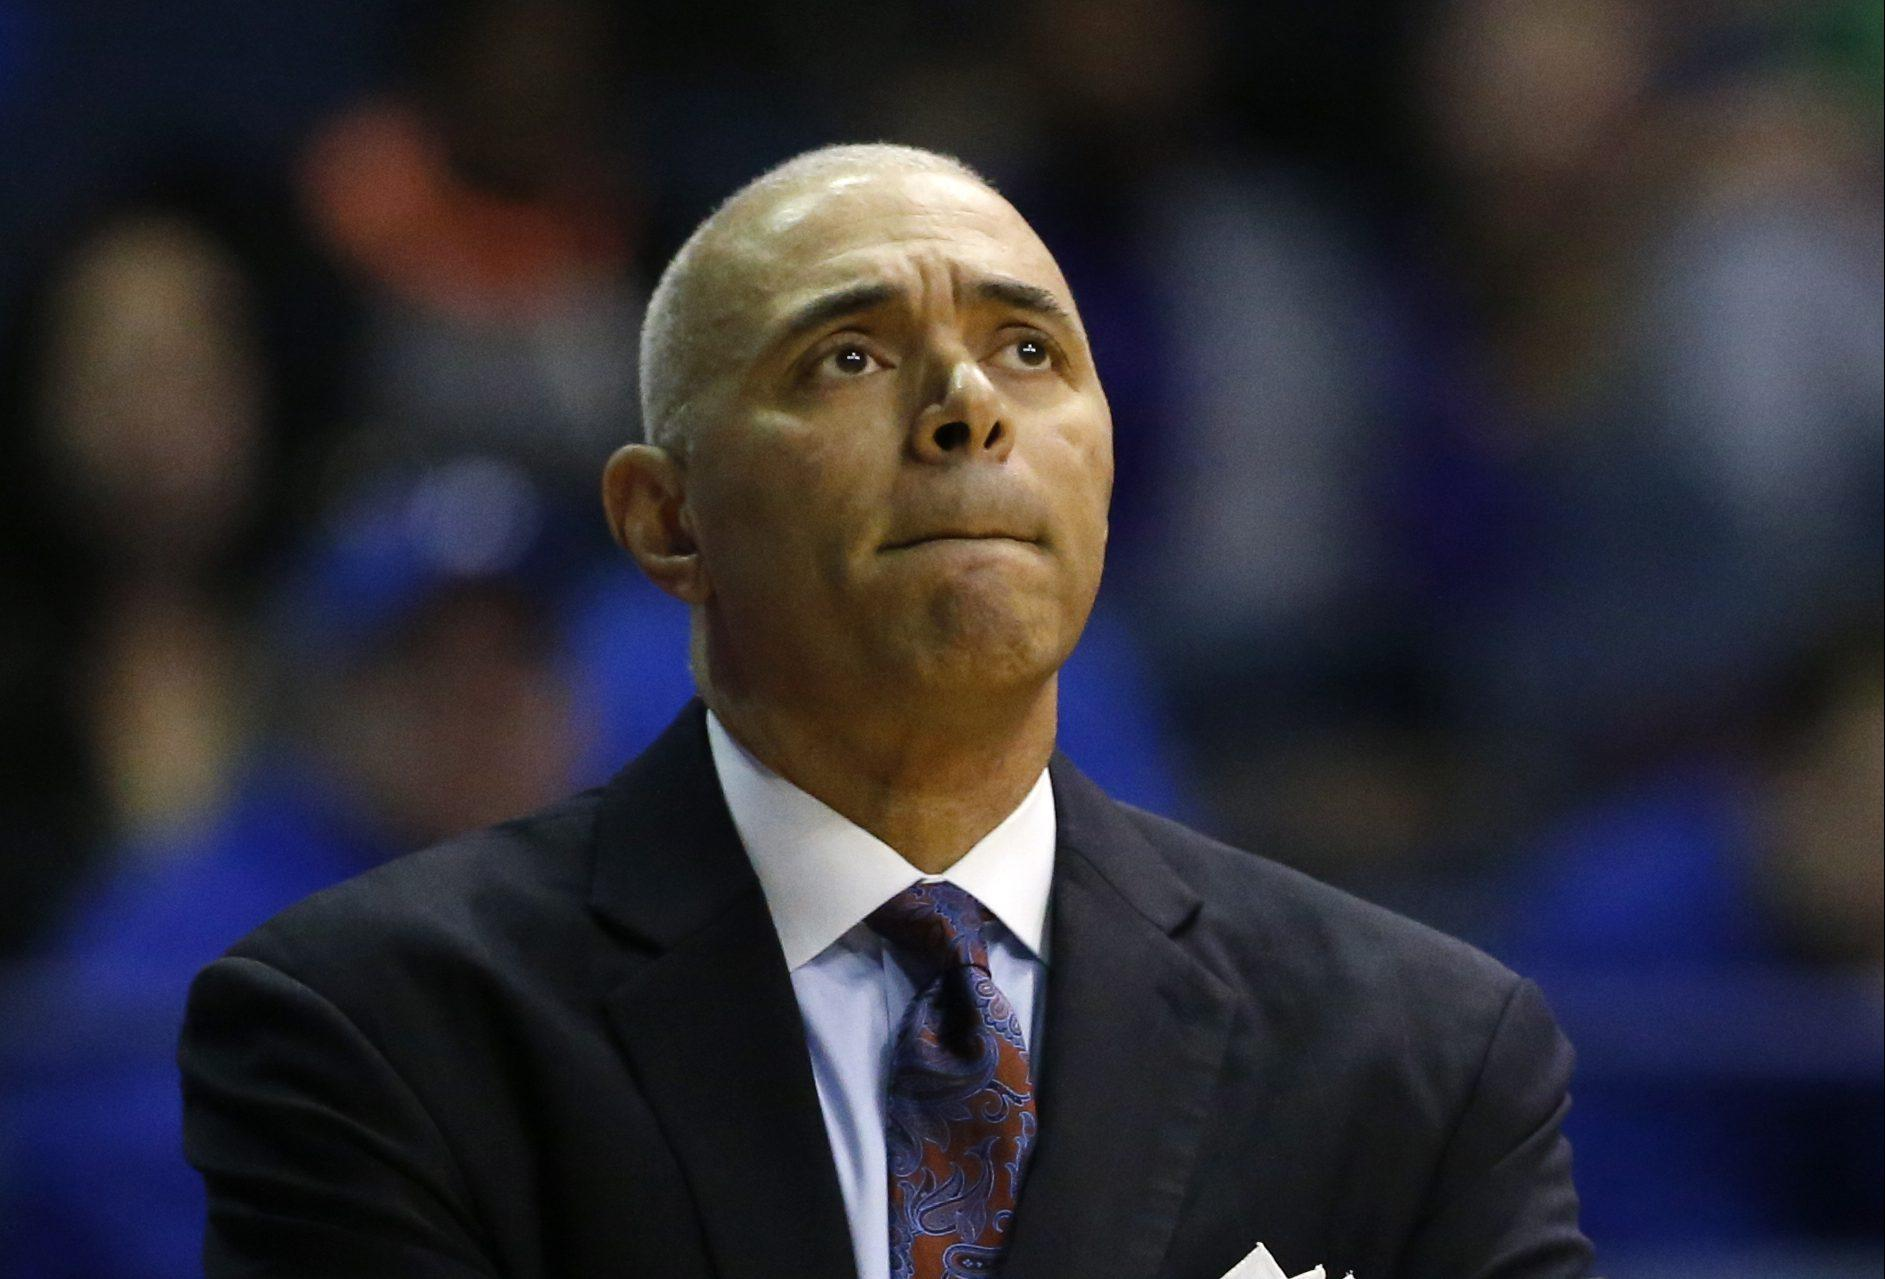 DePaul head coach Dave Leitao enters his fourth season in his second stint with the program looking to provide DePaul's first winning season since the 2006-07 season. (AP Photo/Nam Y. Huh)